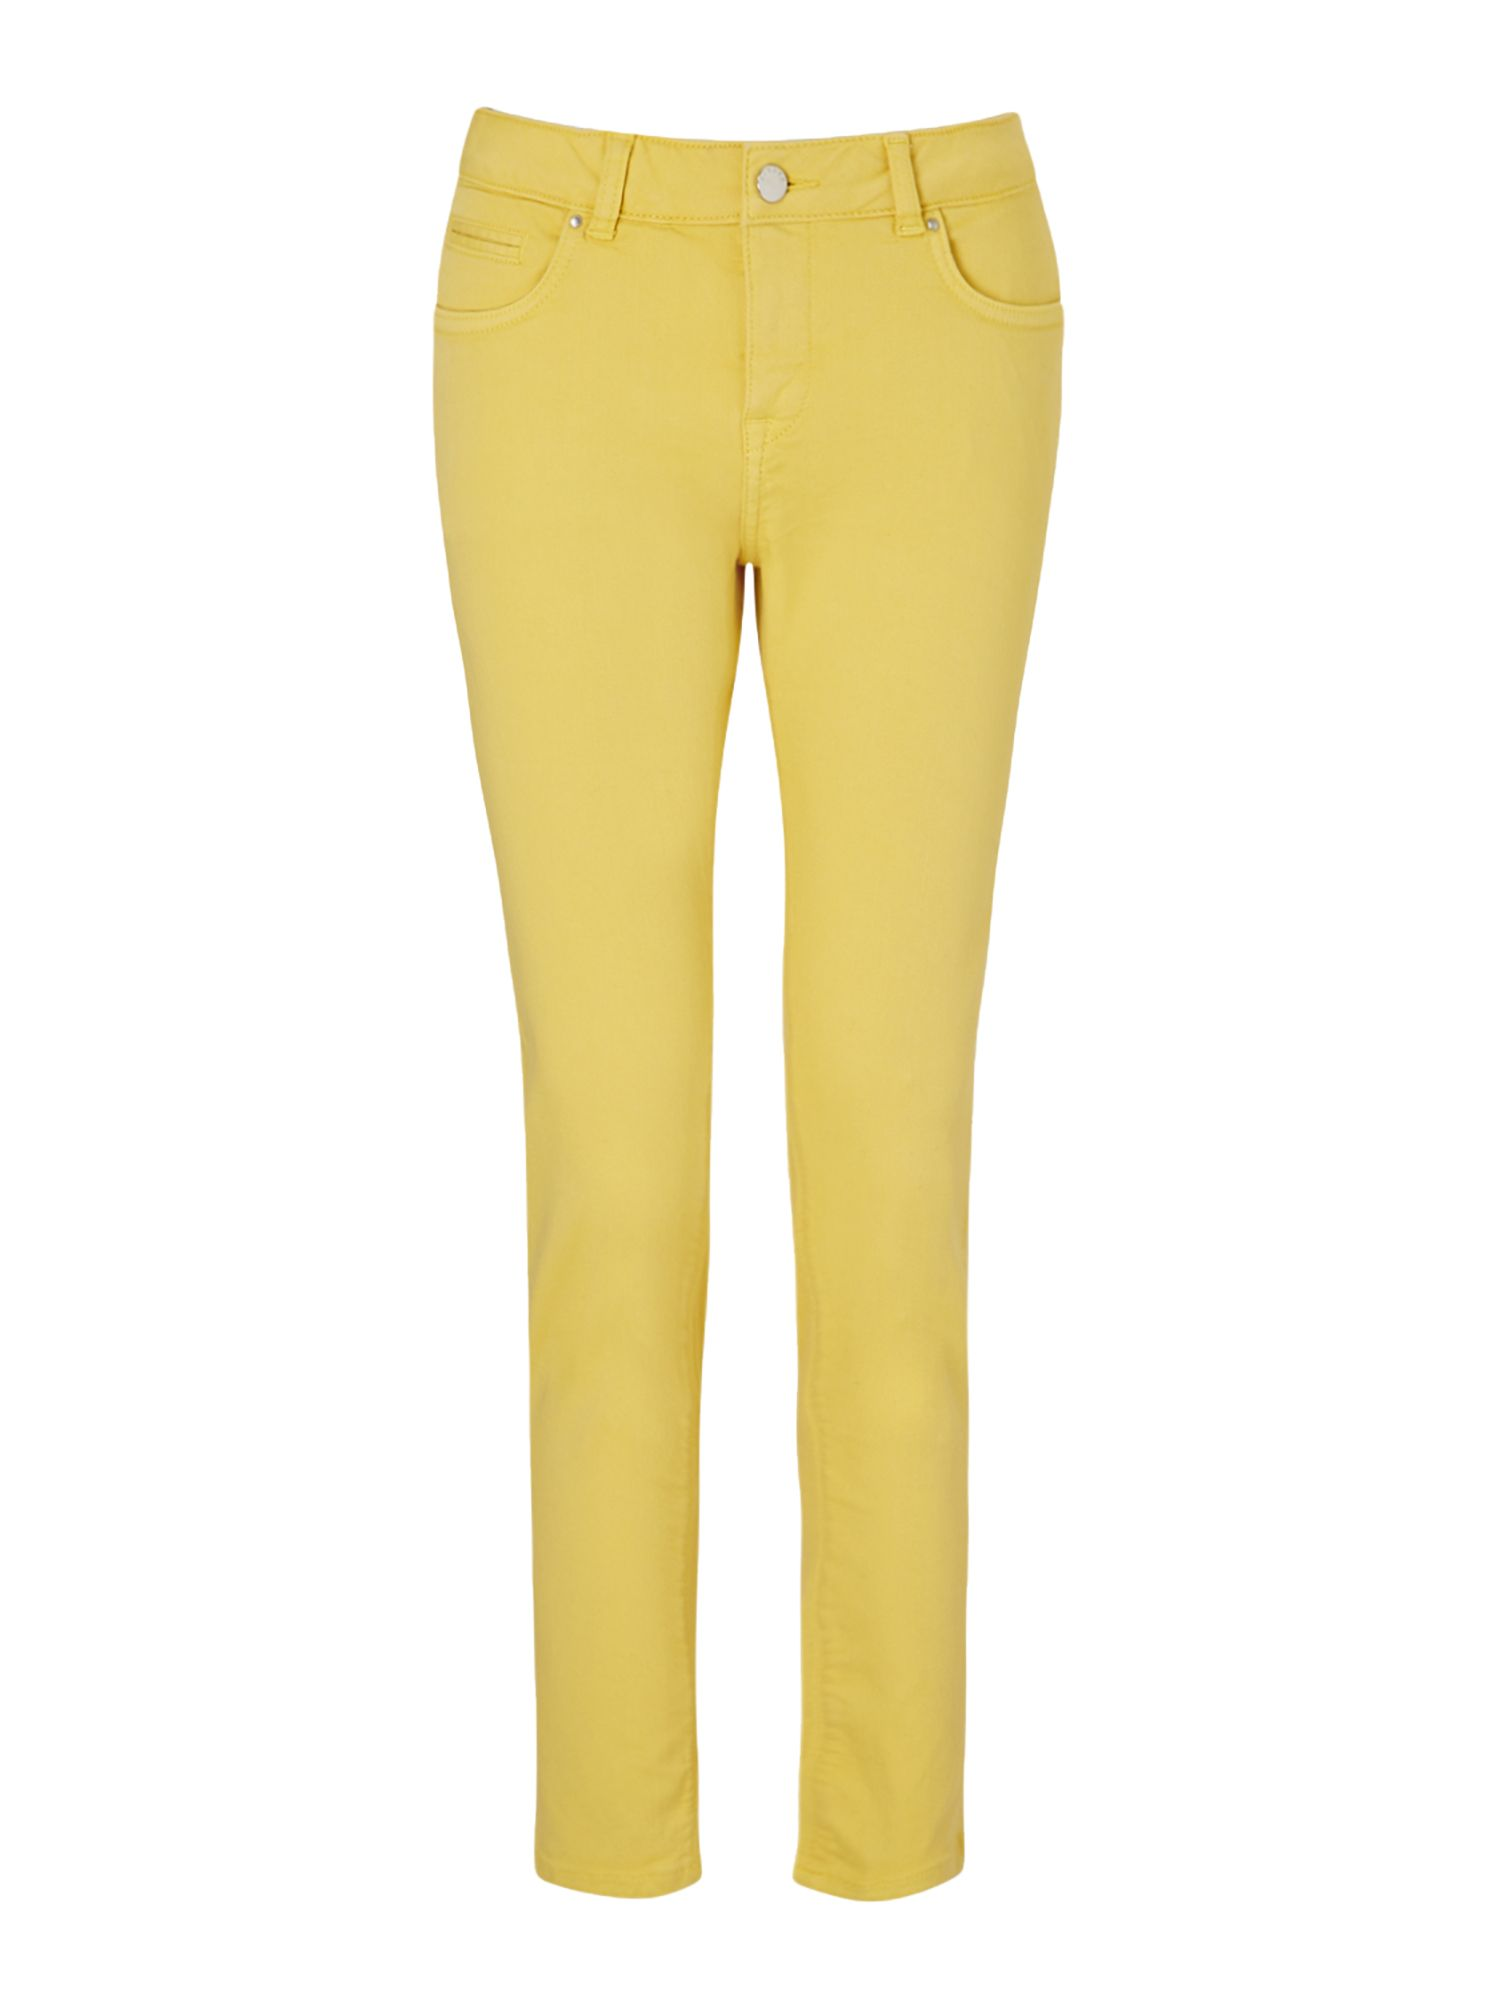 Jigsaw 28 Garment Dye Richmond Jean, Yellow